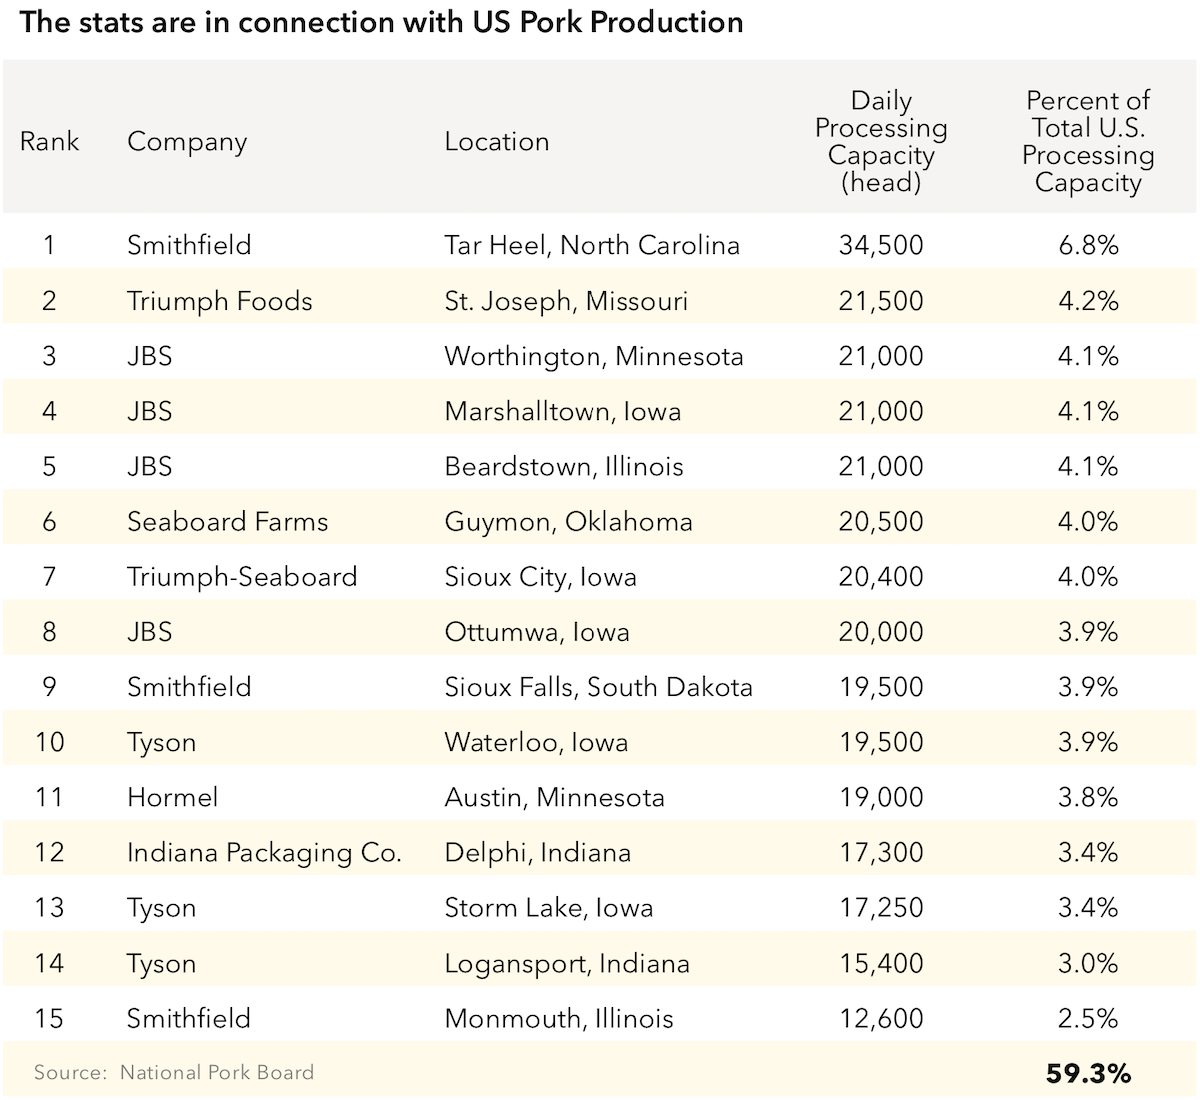 The U.S. has capacity to slaughter more than 500,000 pigs p/day with almost 60% of that capacity coming from just 15 plants, the majority of which are either currently closed or have confirmed cases of COVID-19.